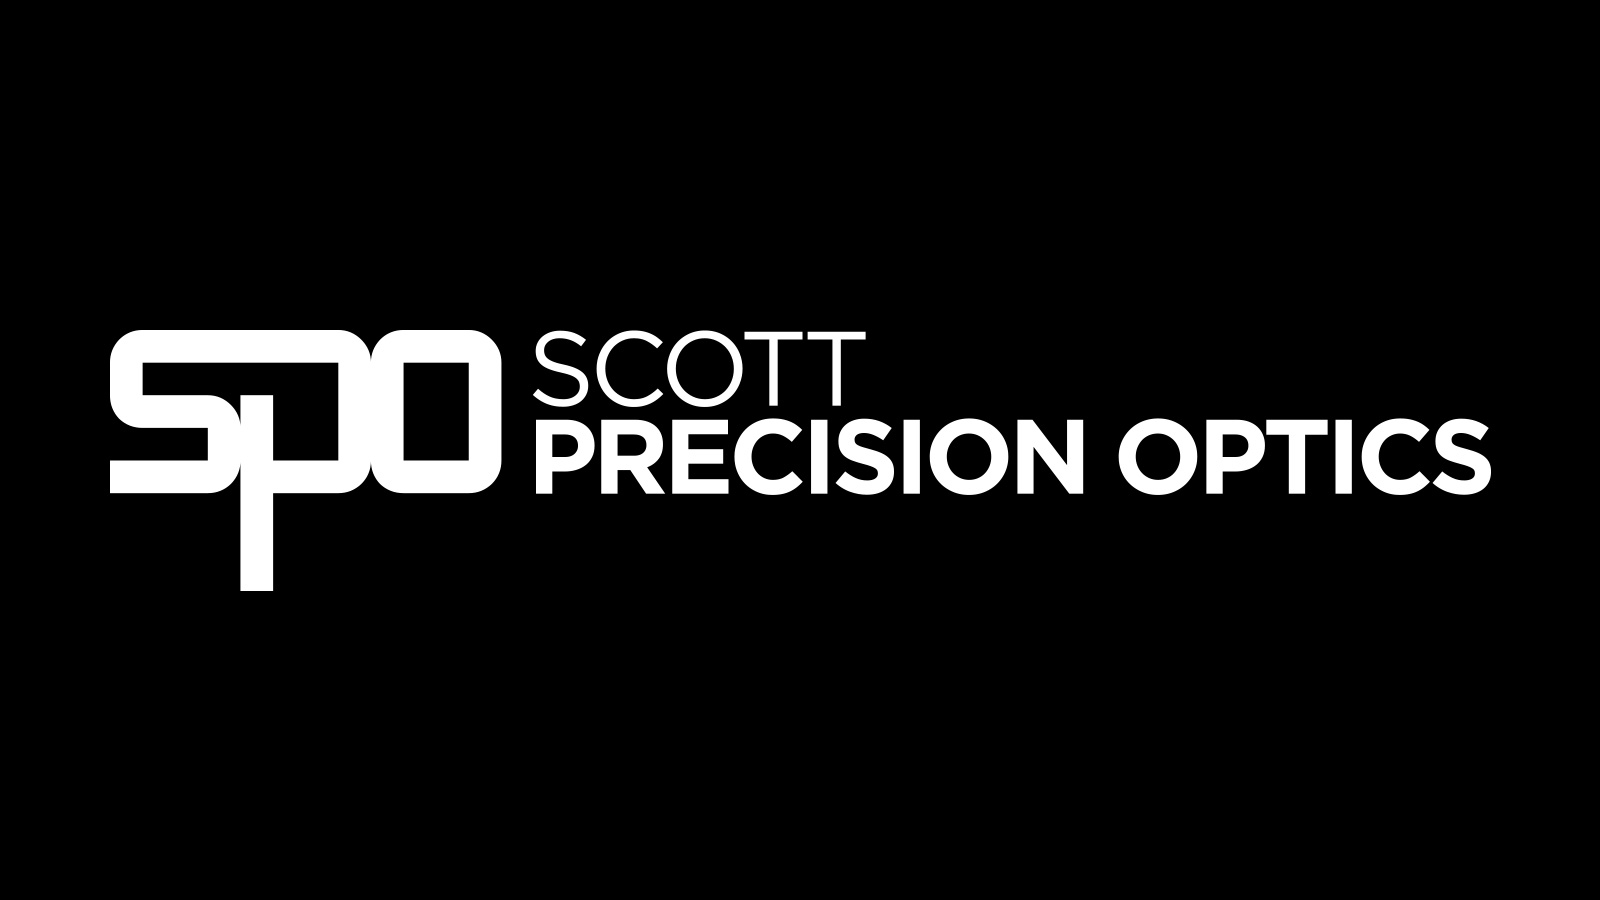 SCOTT Precision Optics - logo